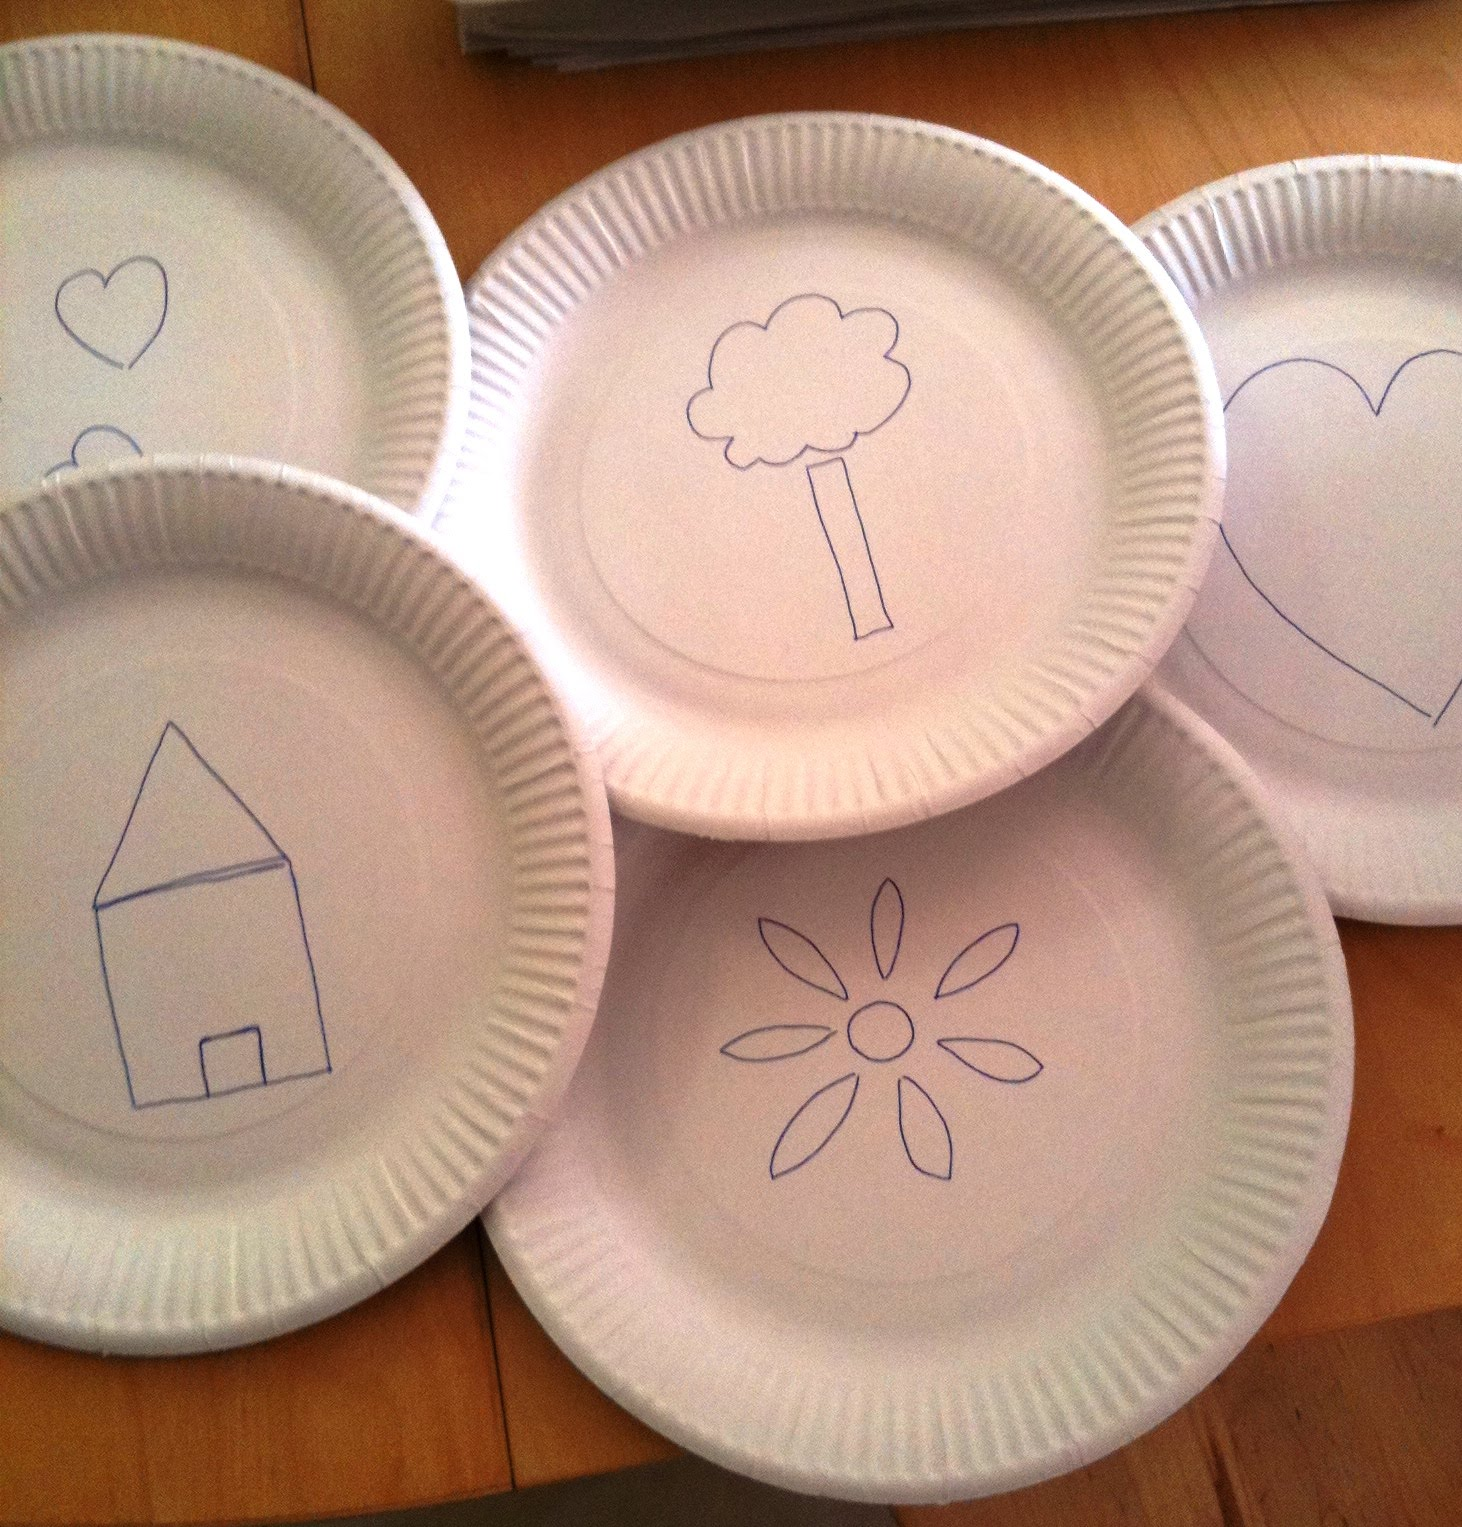 Paper Plate Stencils & A Little Learning For Two: Paper Plate Stencils